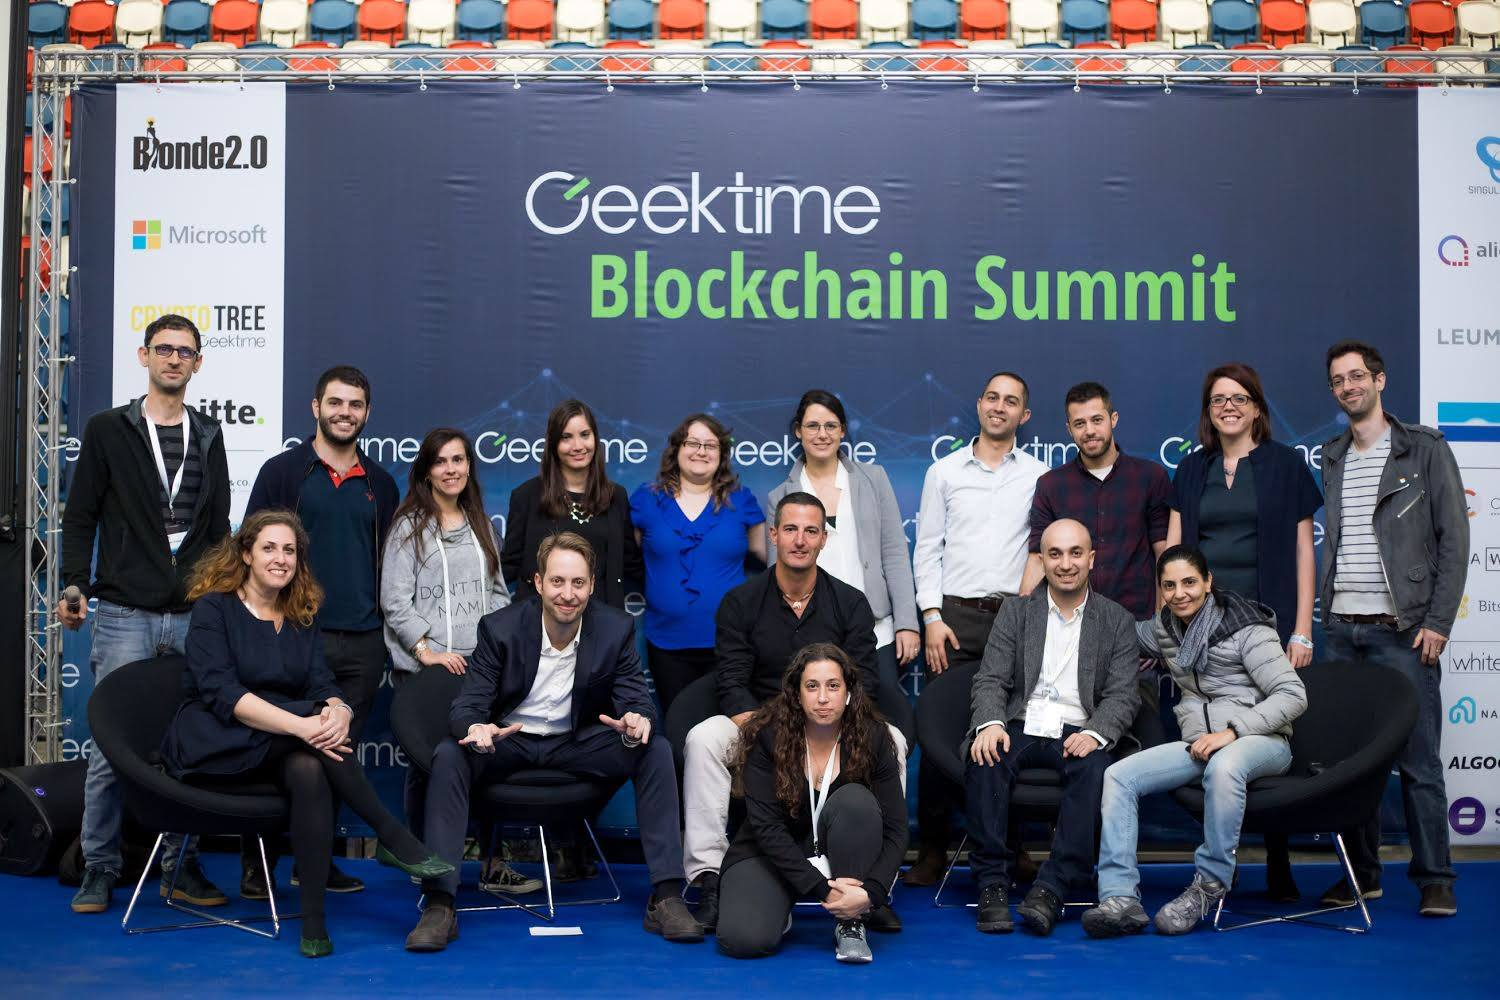 geektime blockchain summit